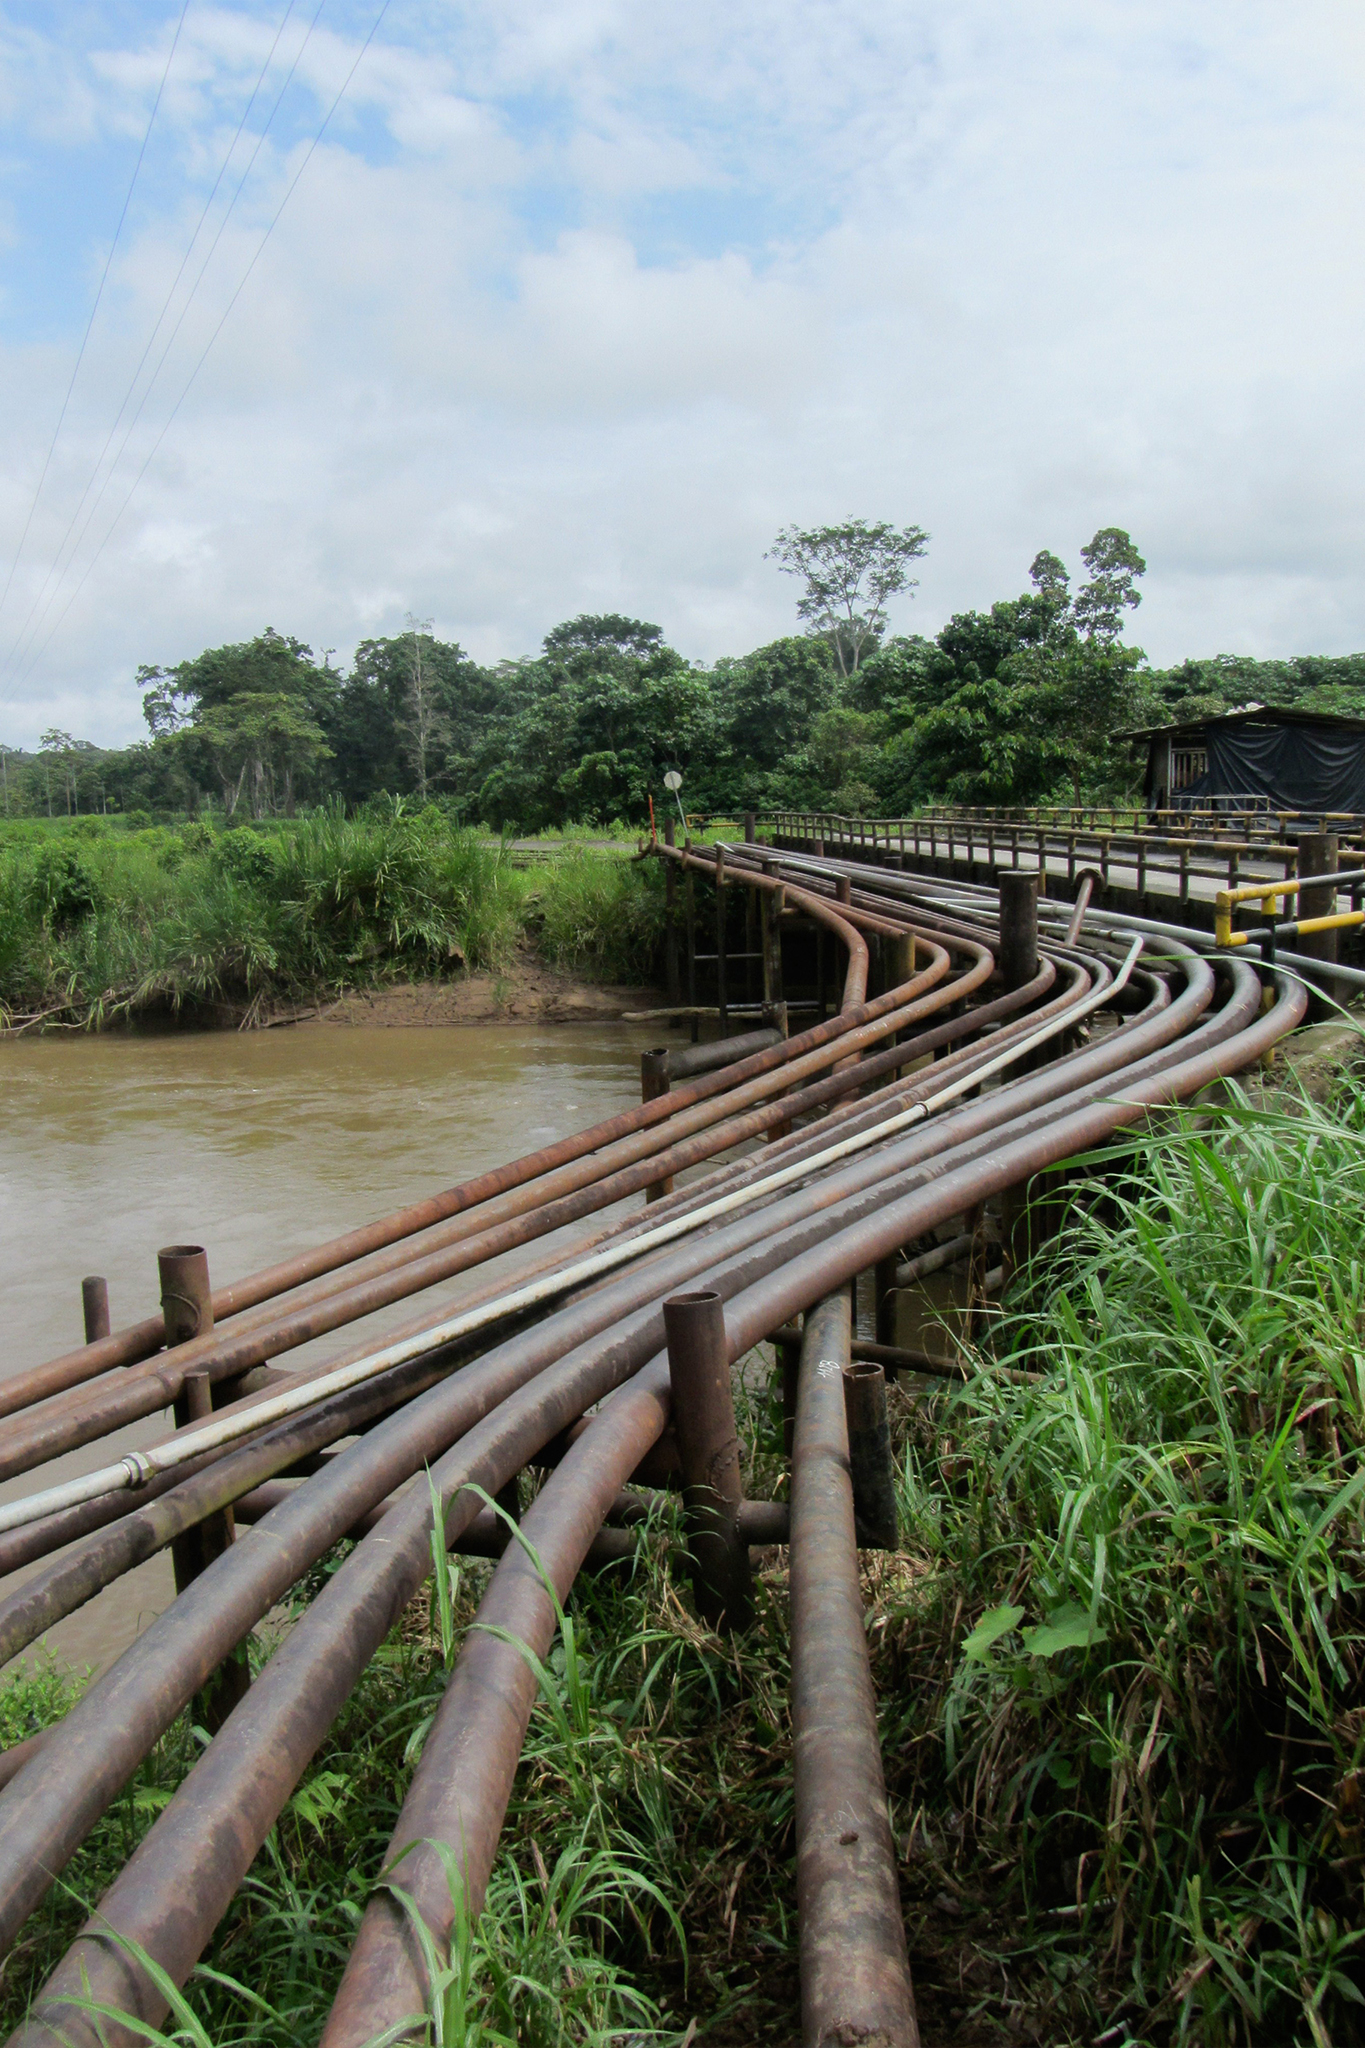 Oil pipelines carry oil from nearby wells across the Shiripuno River, which flows directly through Yasuní National Park.